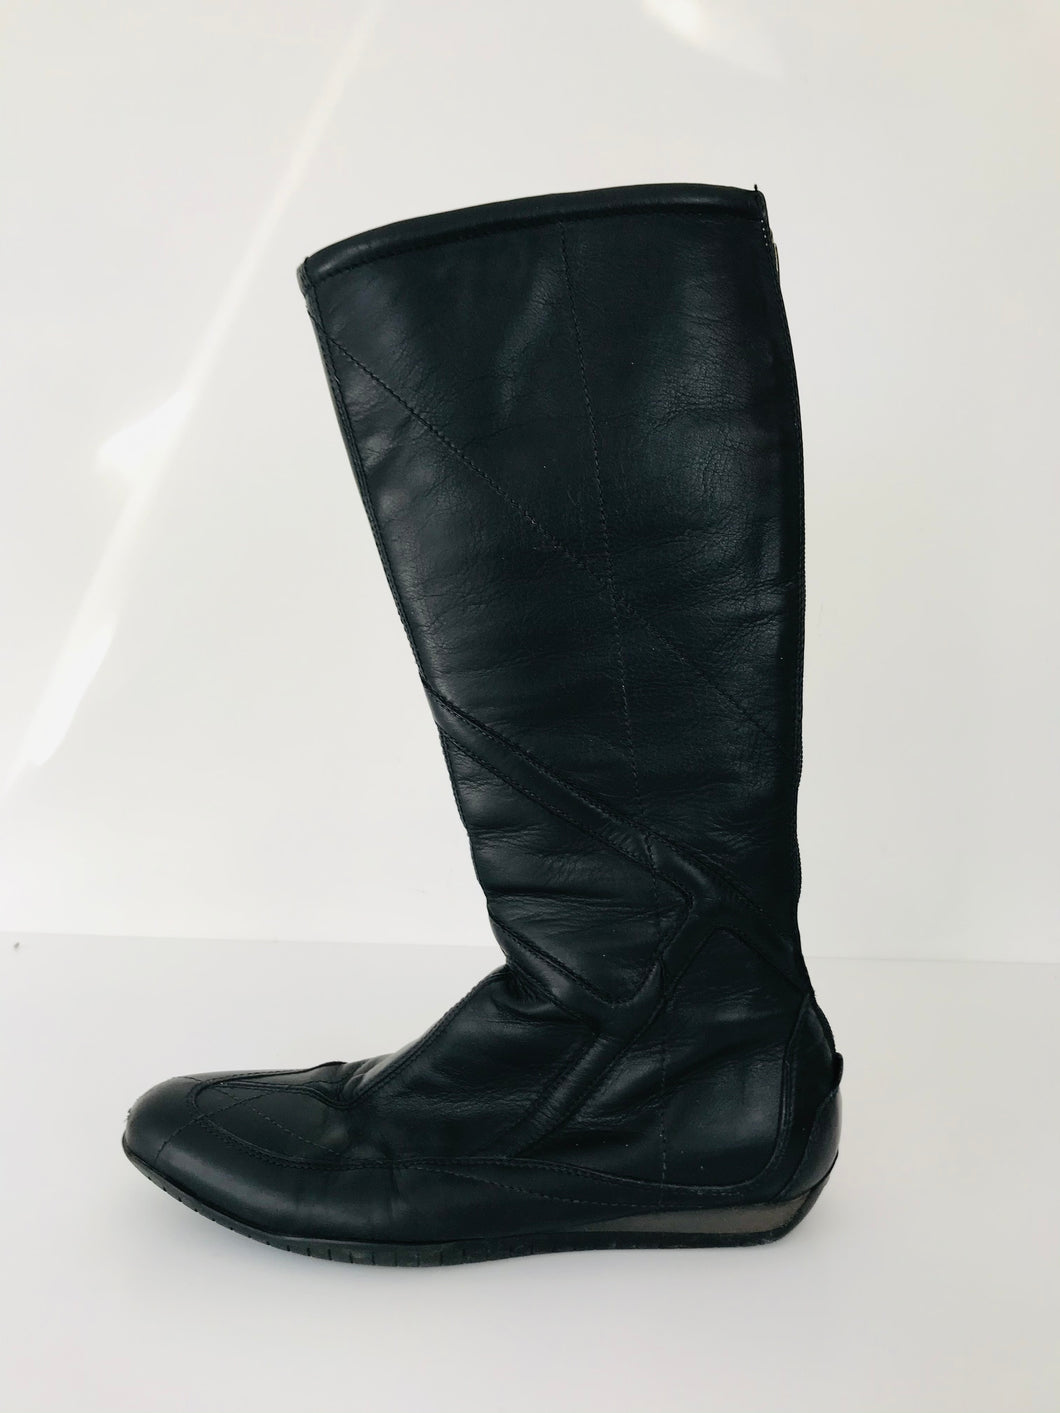 Flexa Fratelli Rosetti Women's Leather Knee Boots | UK5 | Black